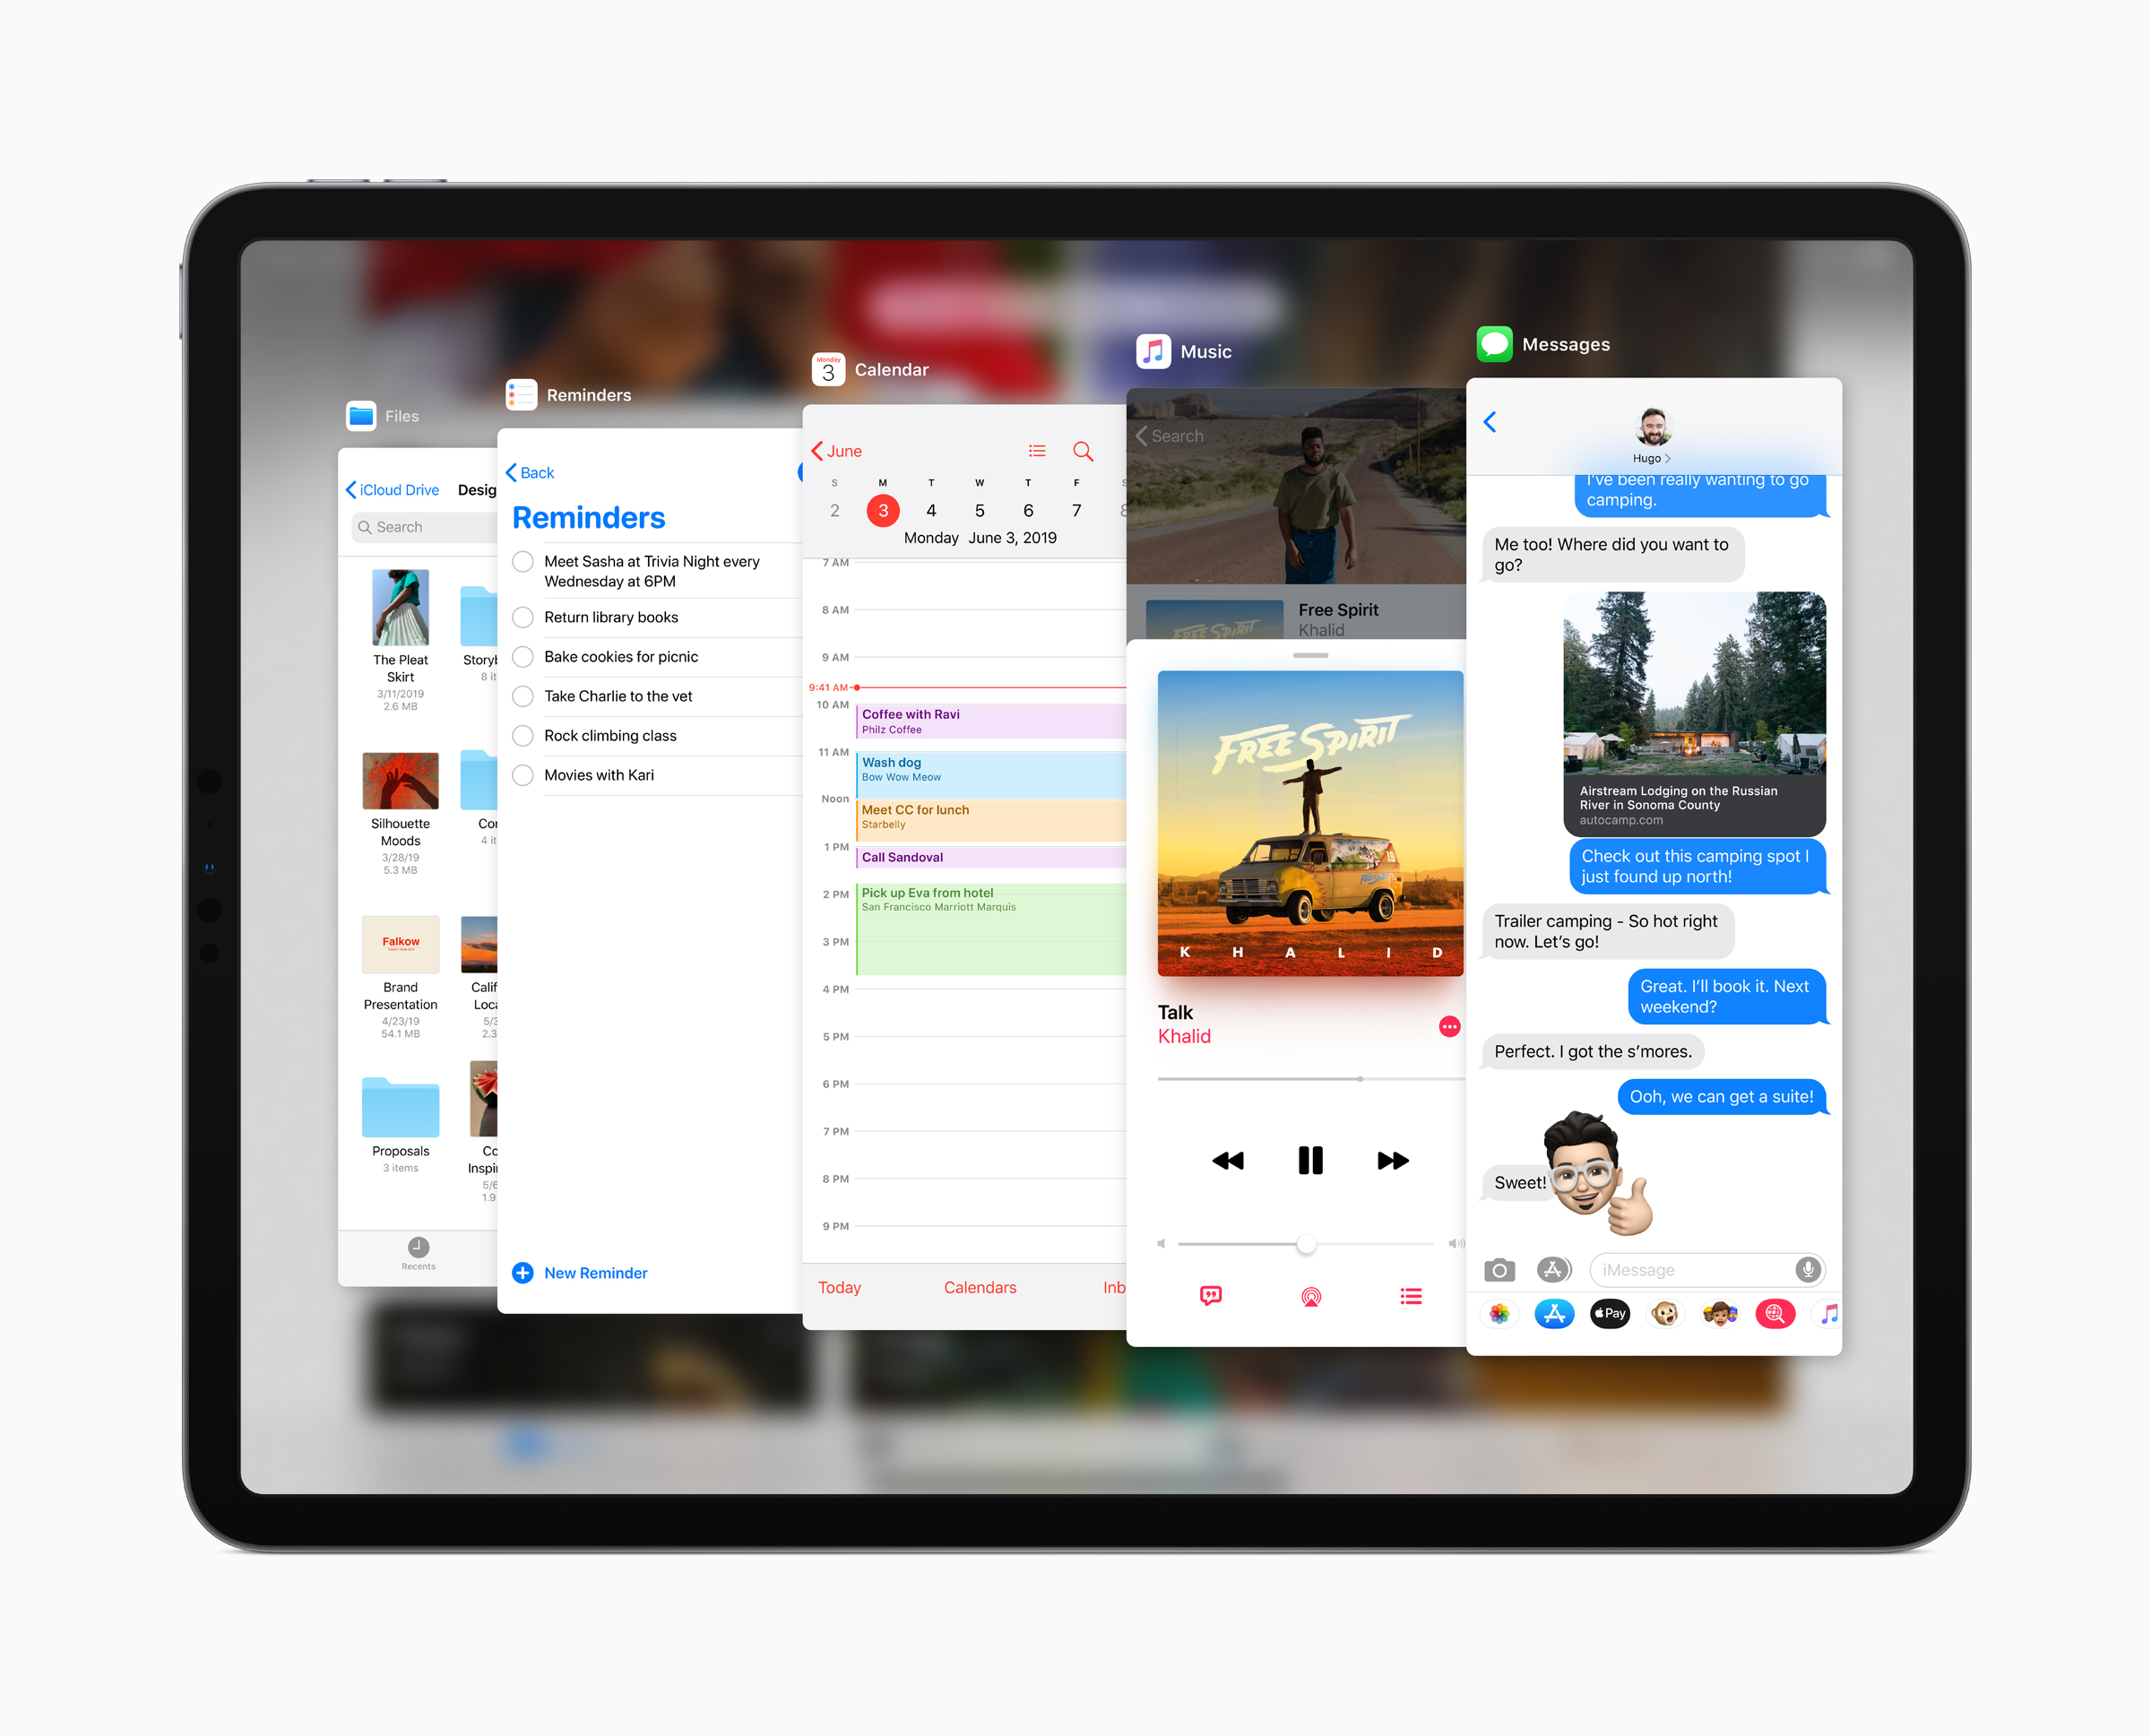 iPadOS Slide Over app switcher. Image courtesy of Apple.